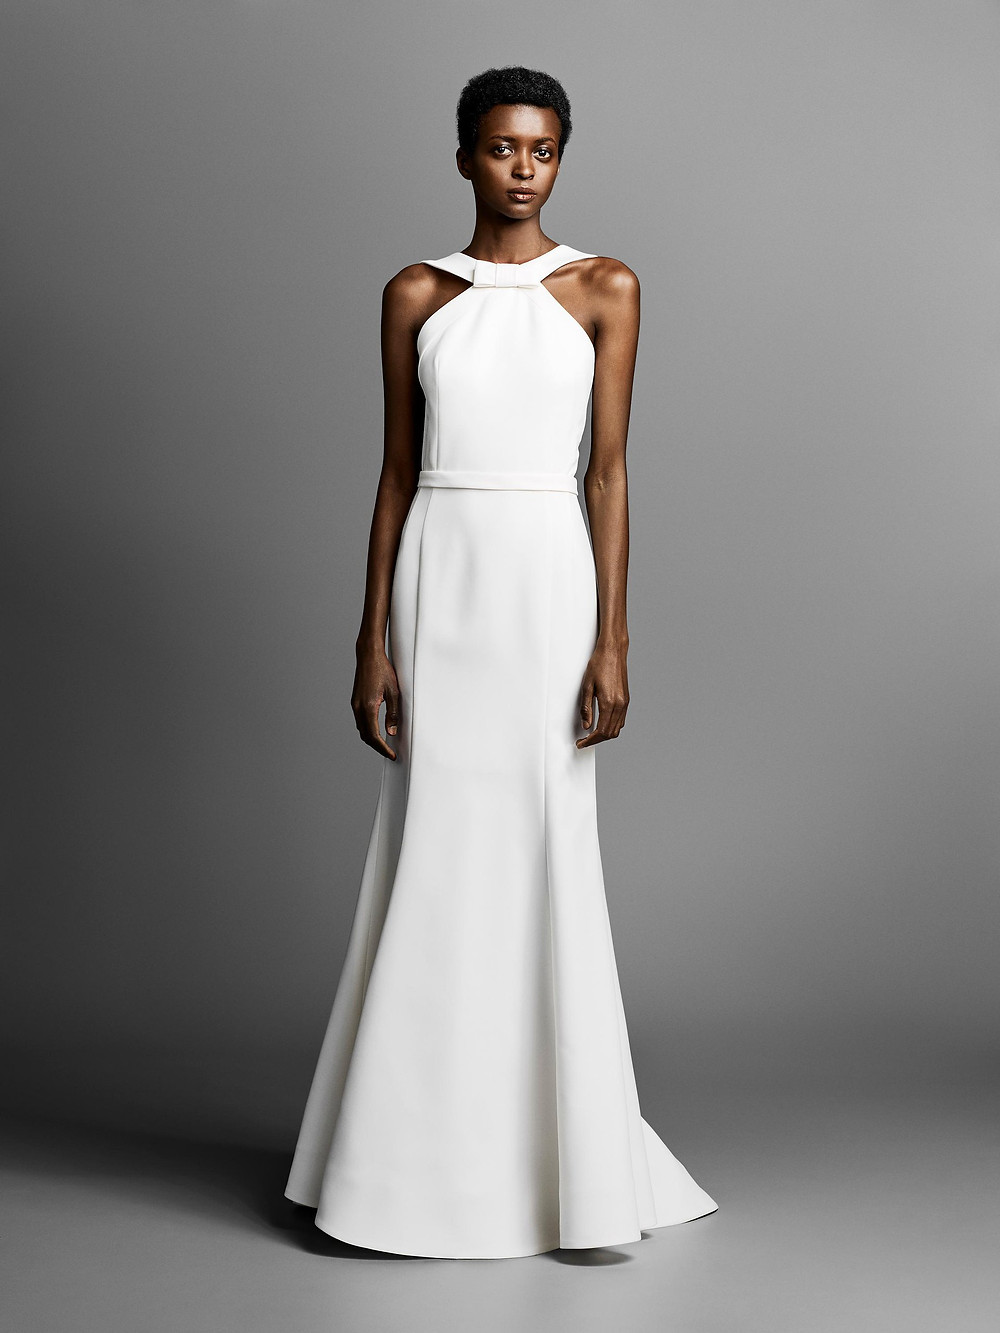 A Viktor & Rolf simple halterneck A-line wedding dress